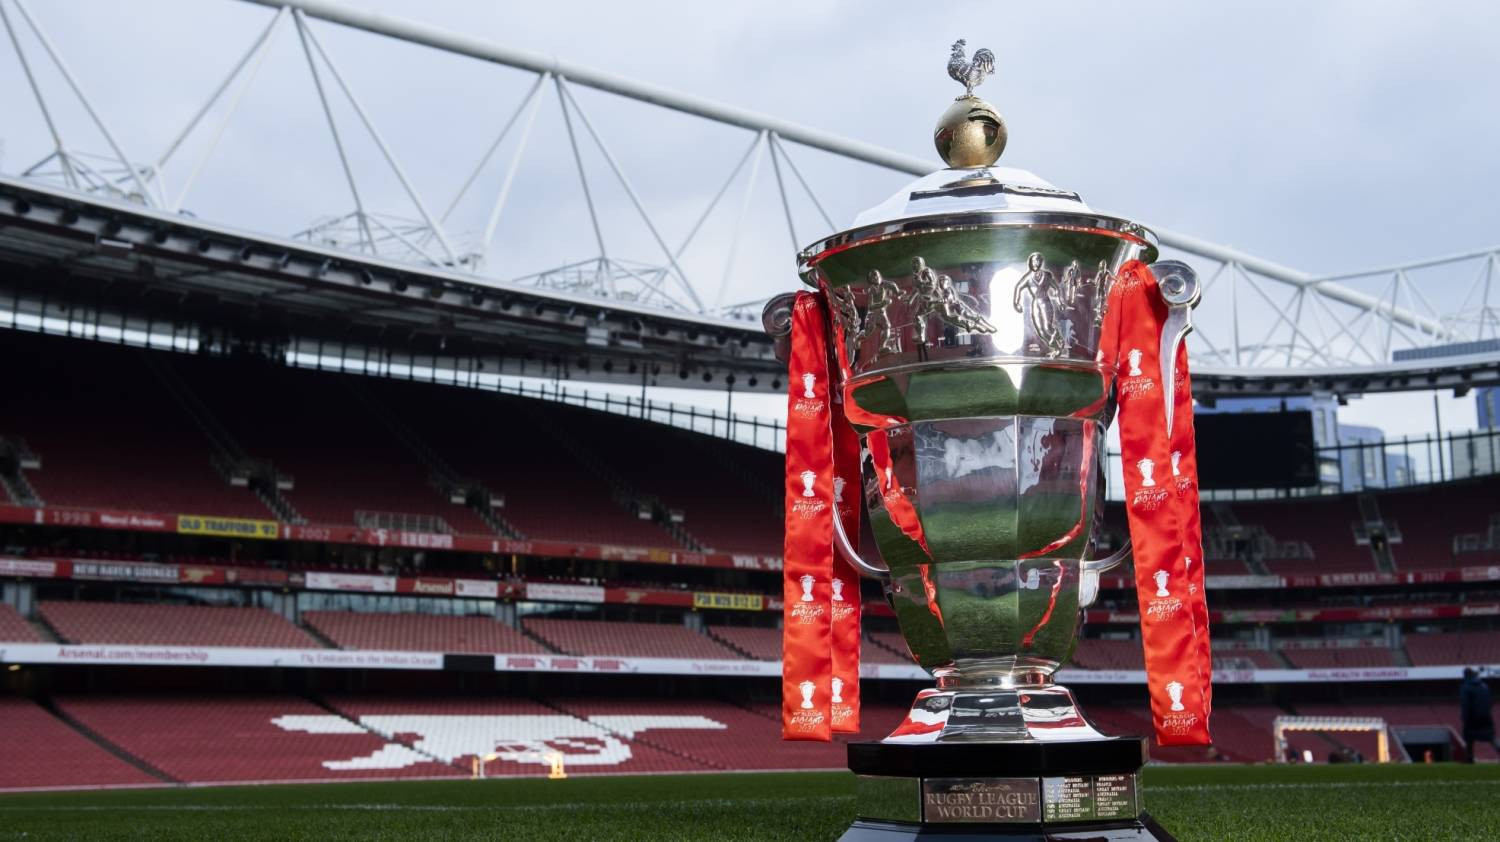 The Rugby League World Cup, due to take place in England in 2021, has appointed Riverside Brands as its licensing agent ©Getty Images